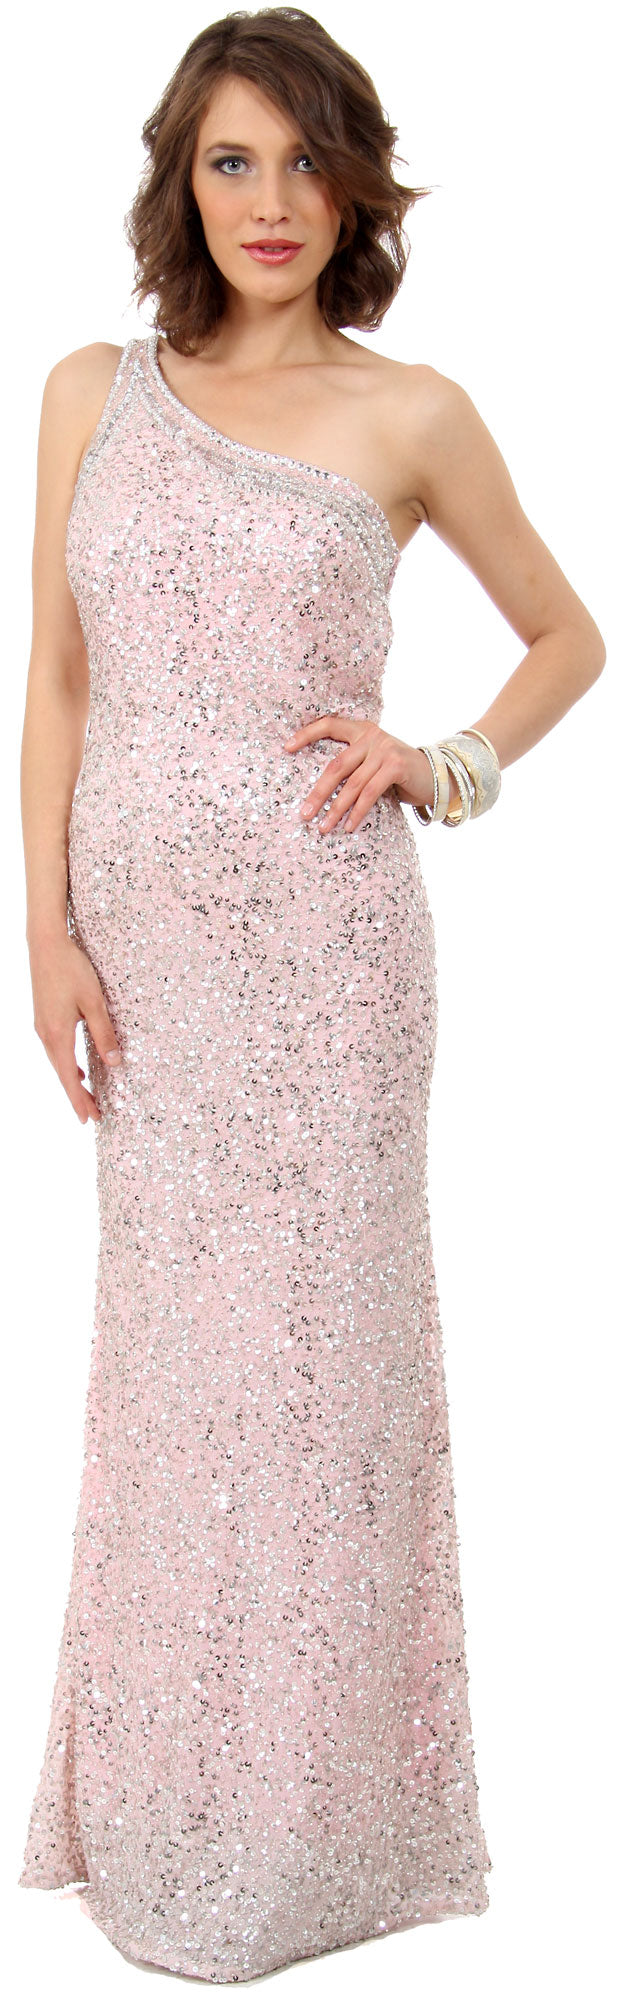 Image of One Shoulder Bare Back Sequined Long Formal Prom Dress in an alternative picture